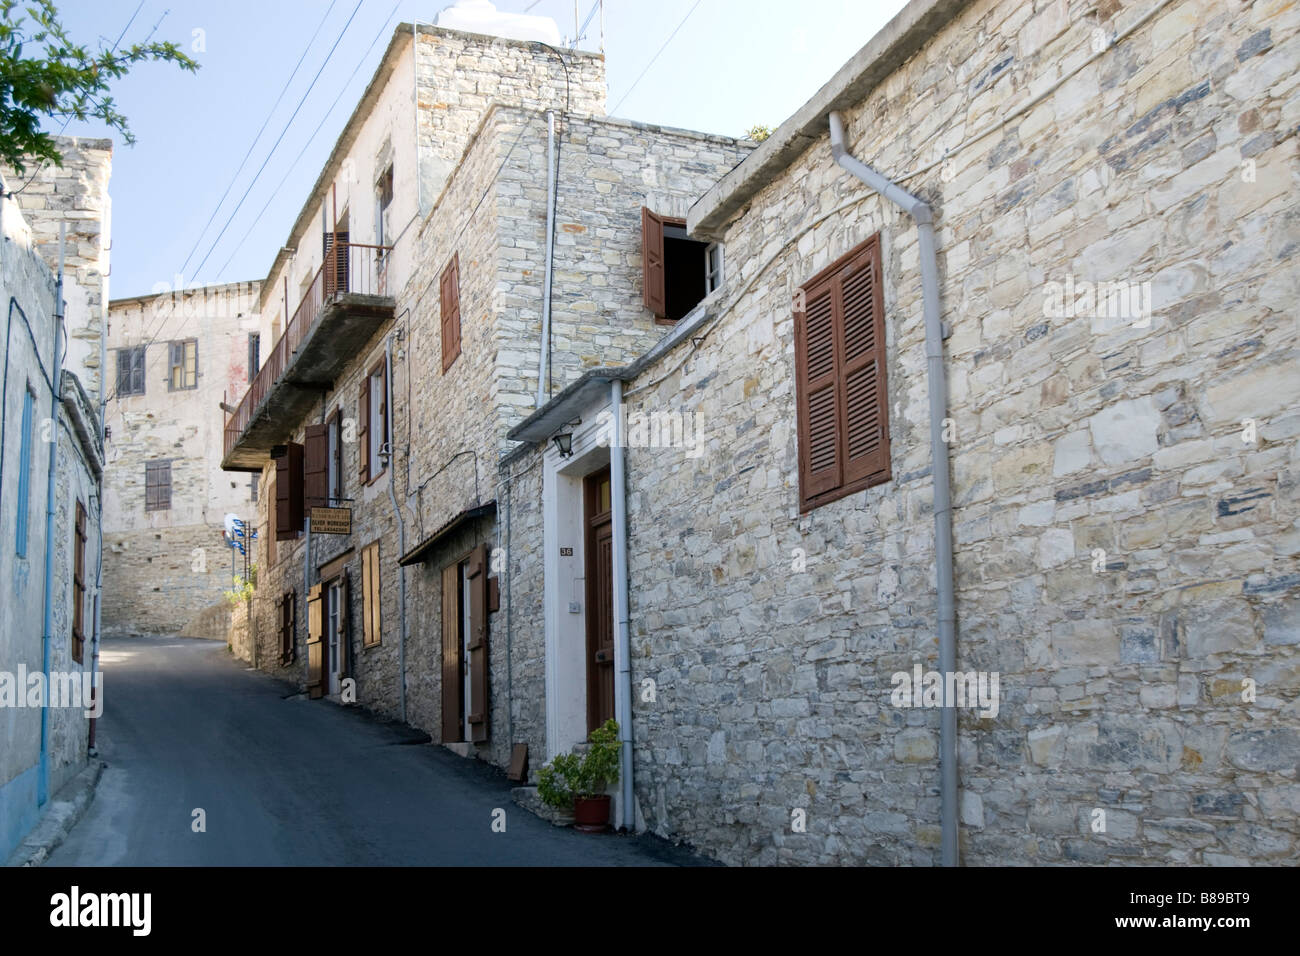 Street view on sunset in Lefkara, South Cyprus Stock Photo